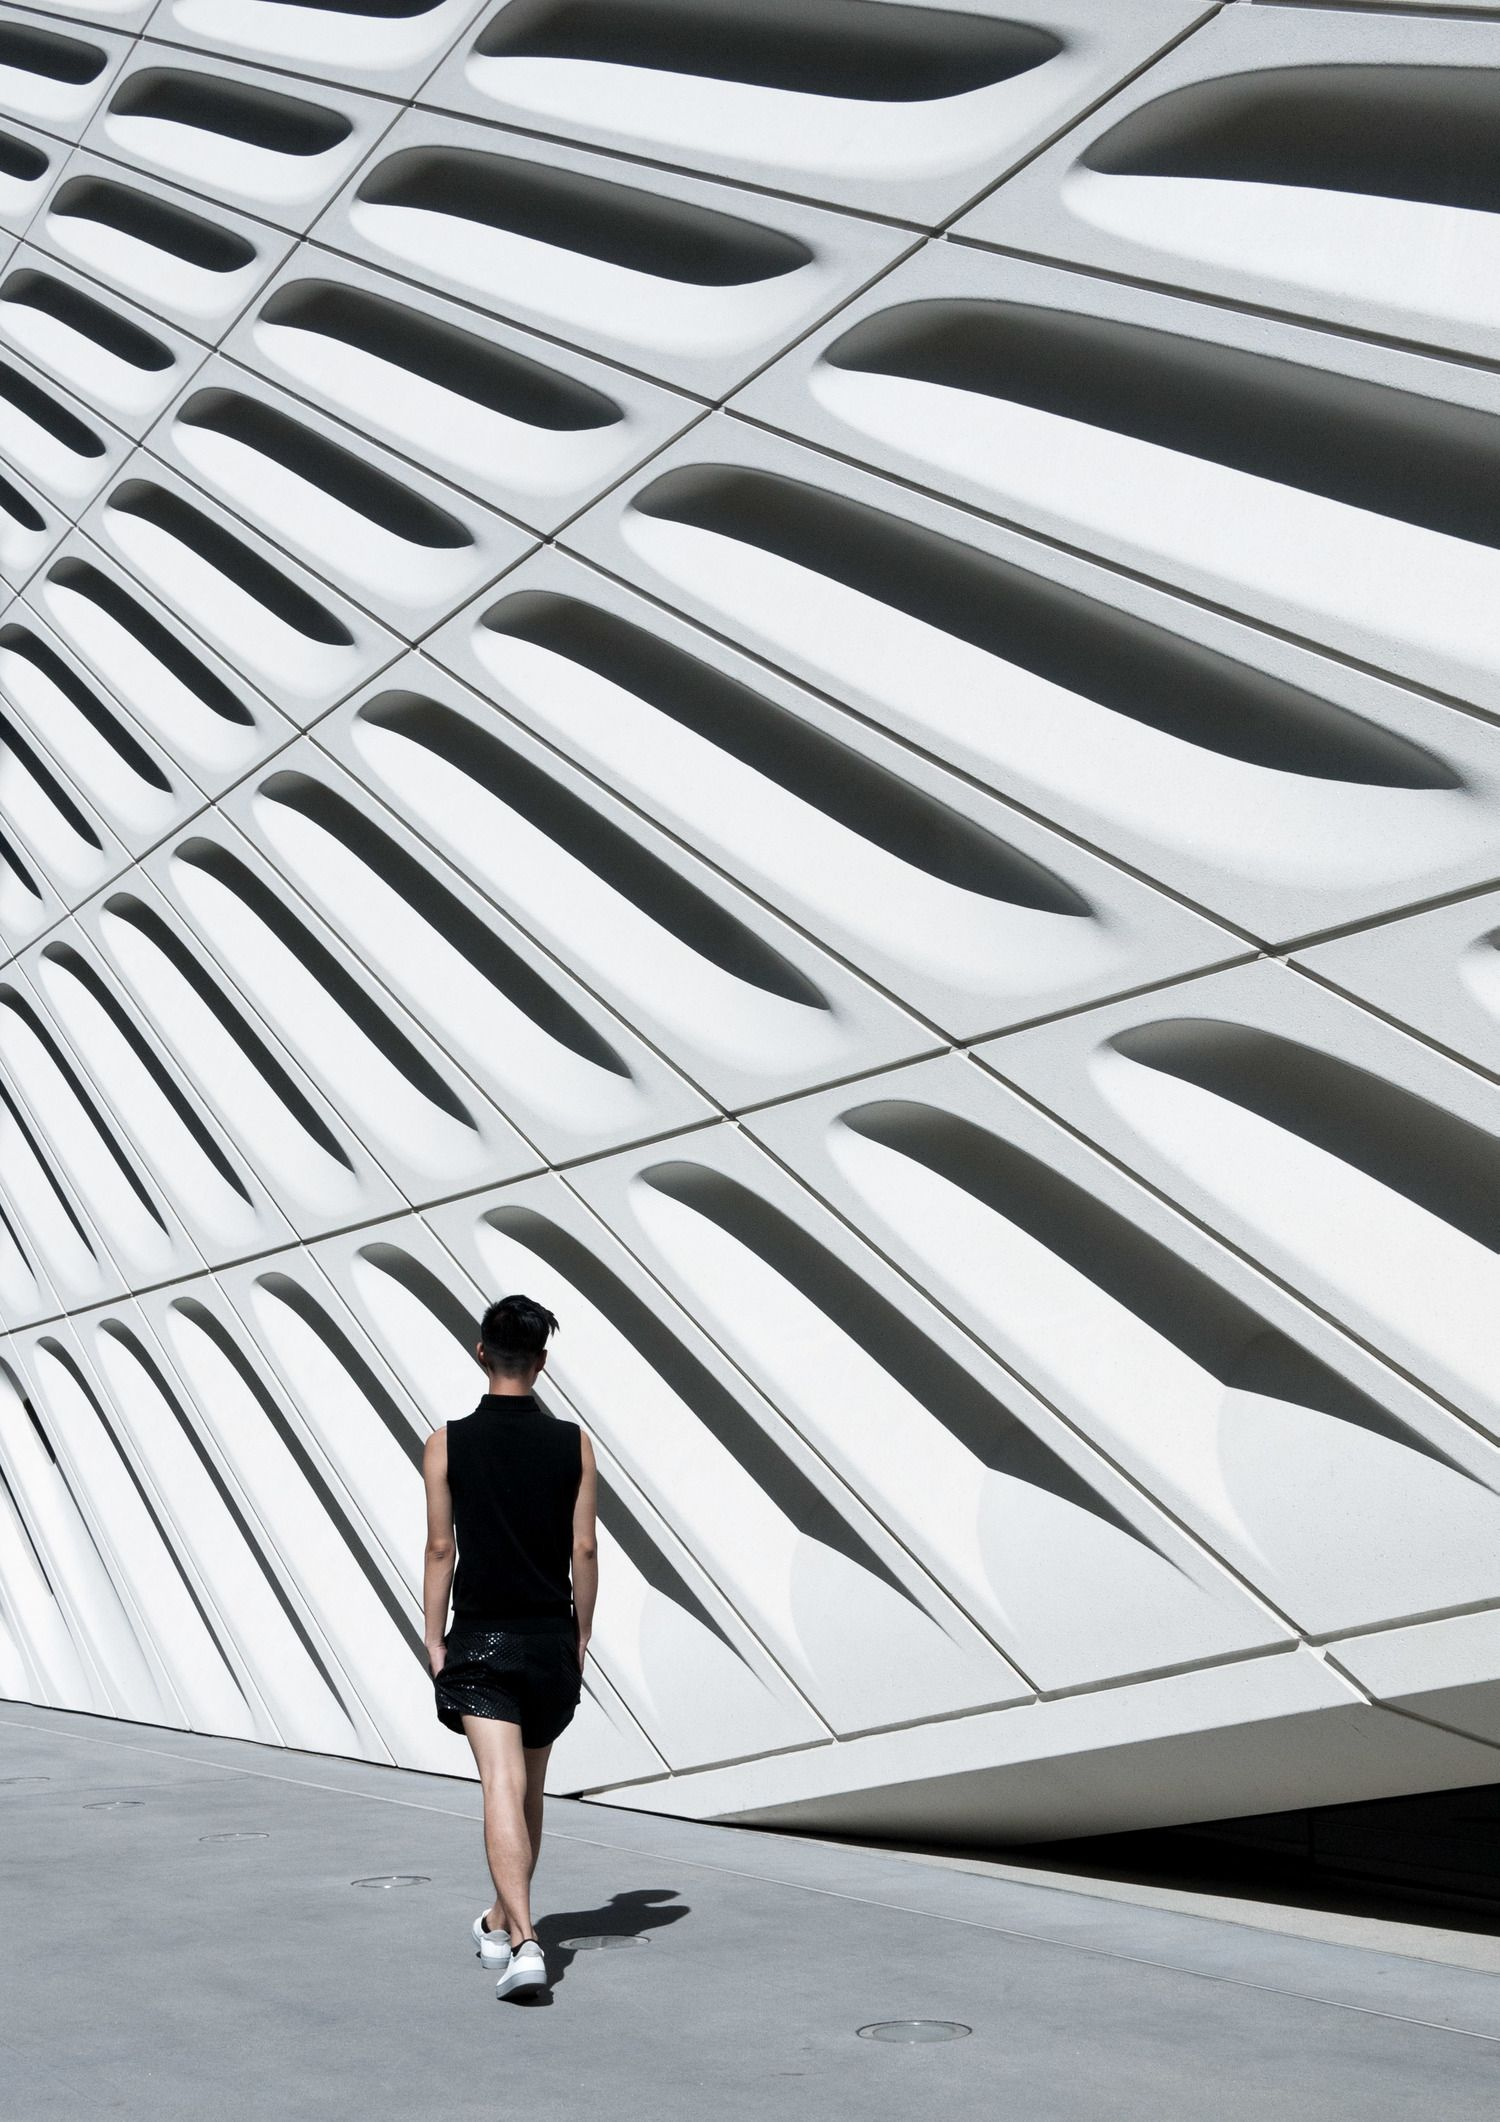 5 Reasons To Visit The Broad Right Now The Broad Museum Broad Museum Los Angeles Los Angeles Architecture